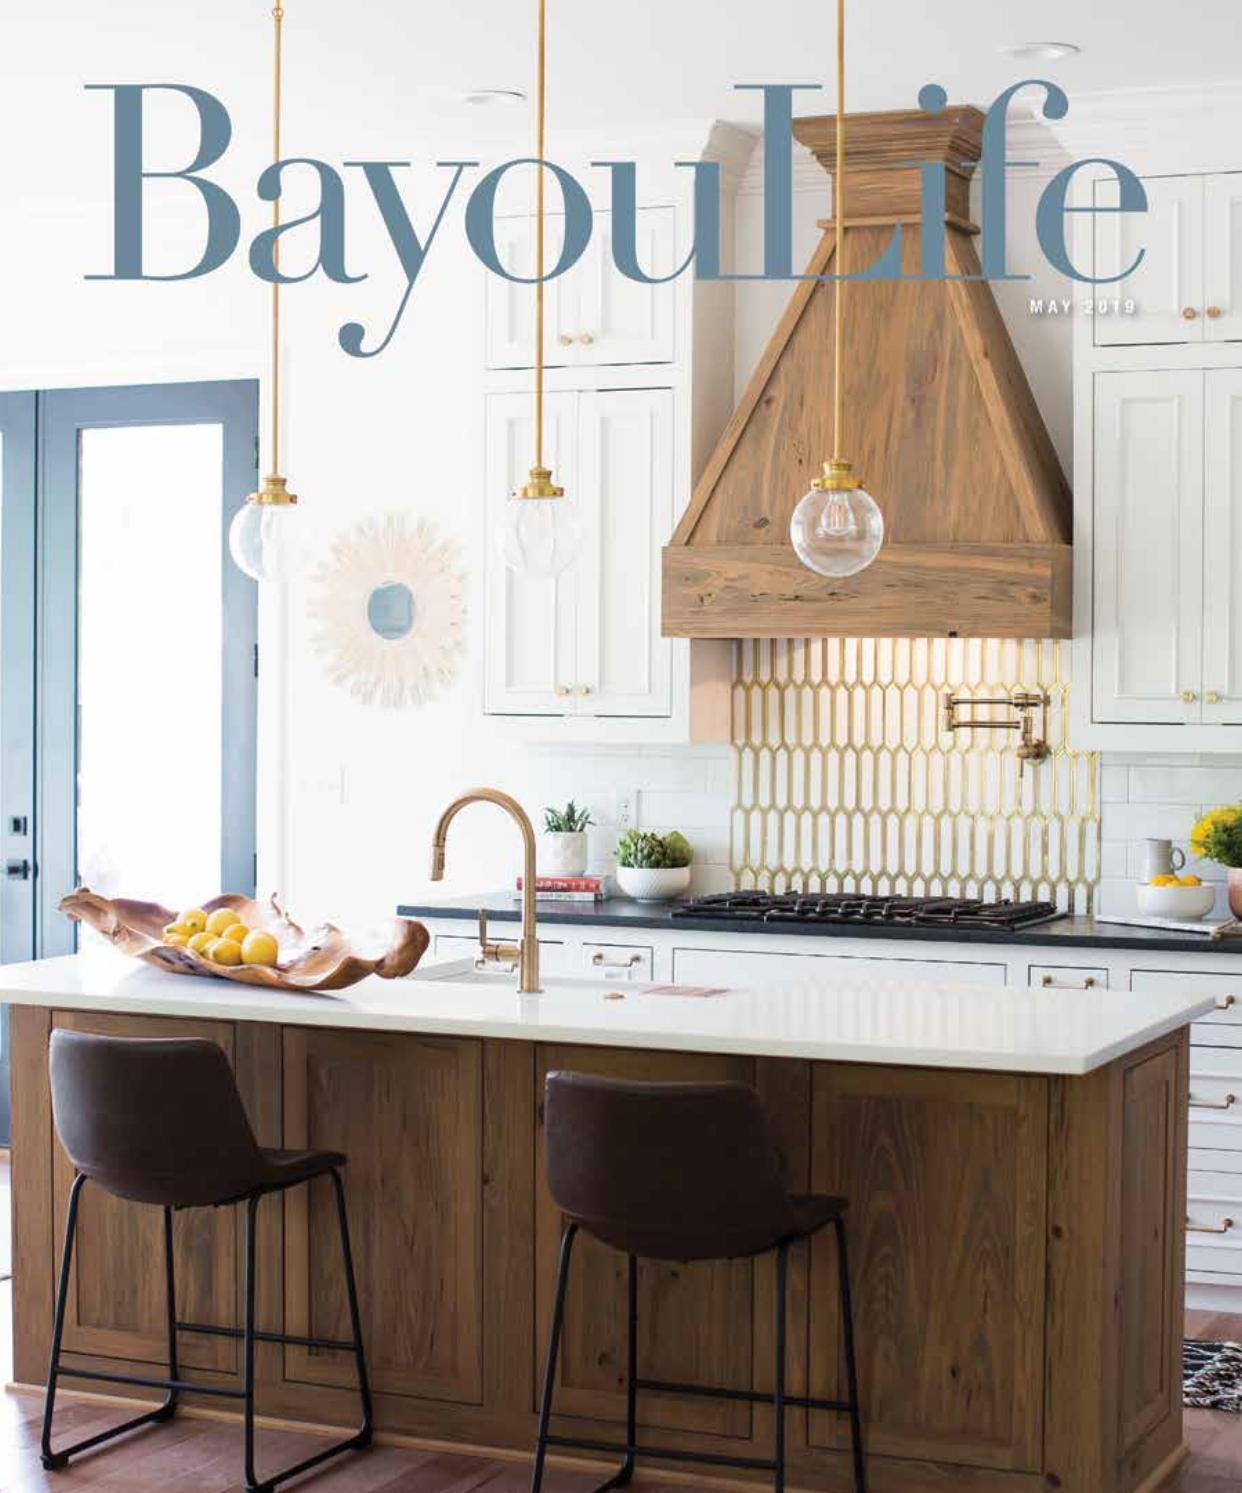 dab717f21f4 BayouLife Magazine May 2019 by BayouLife Magazine - issuu